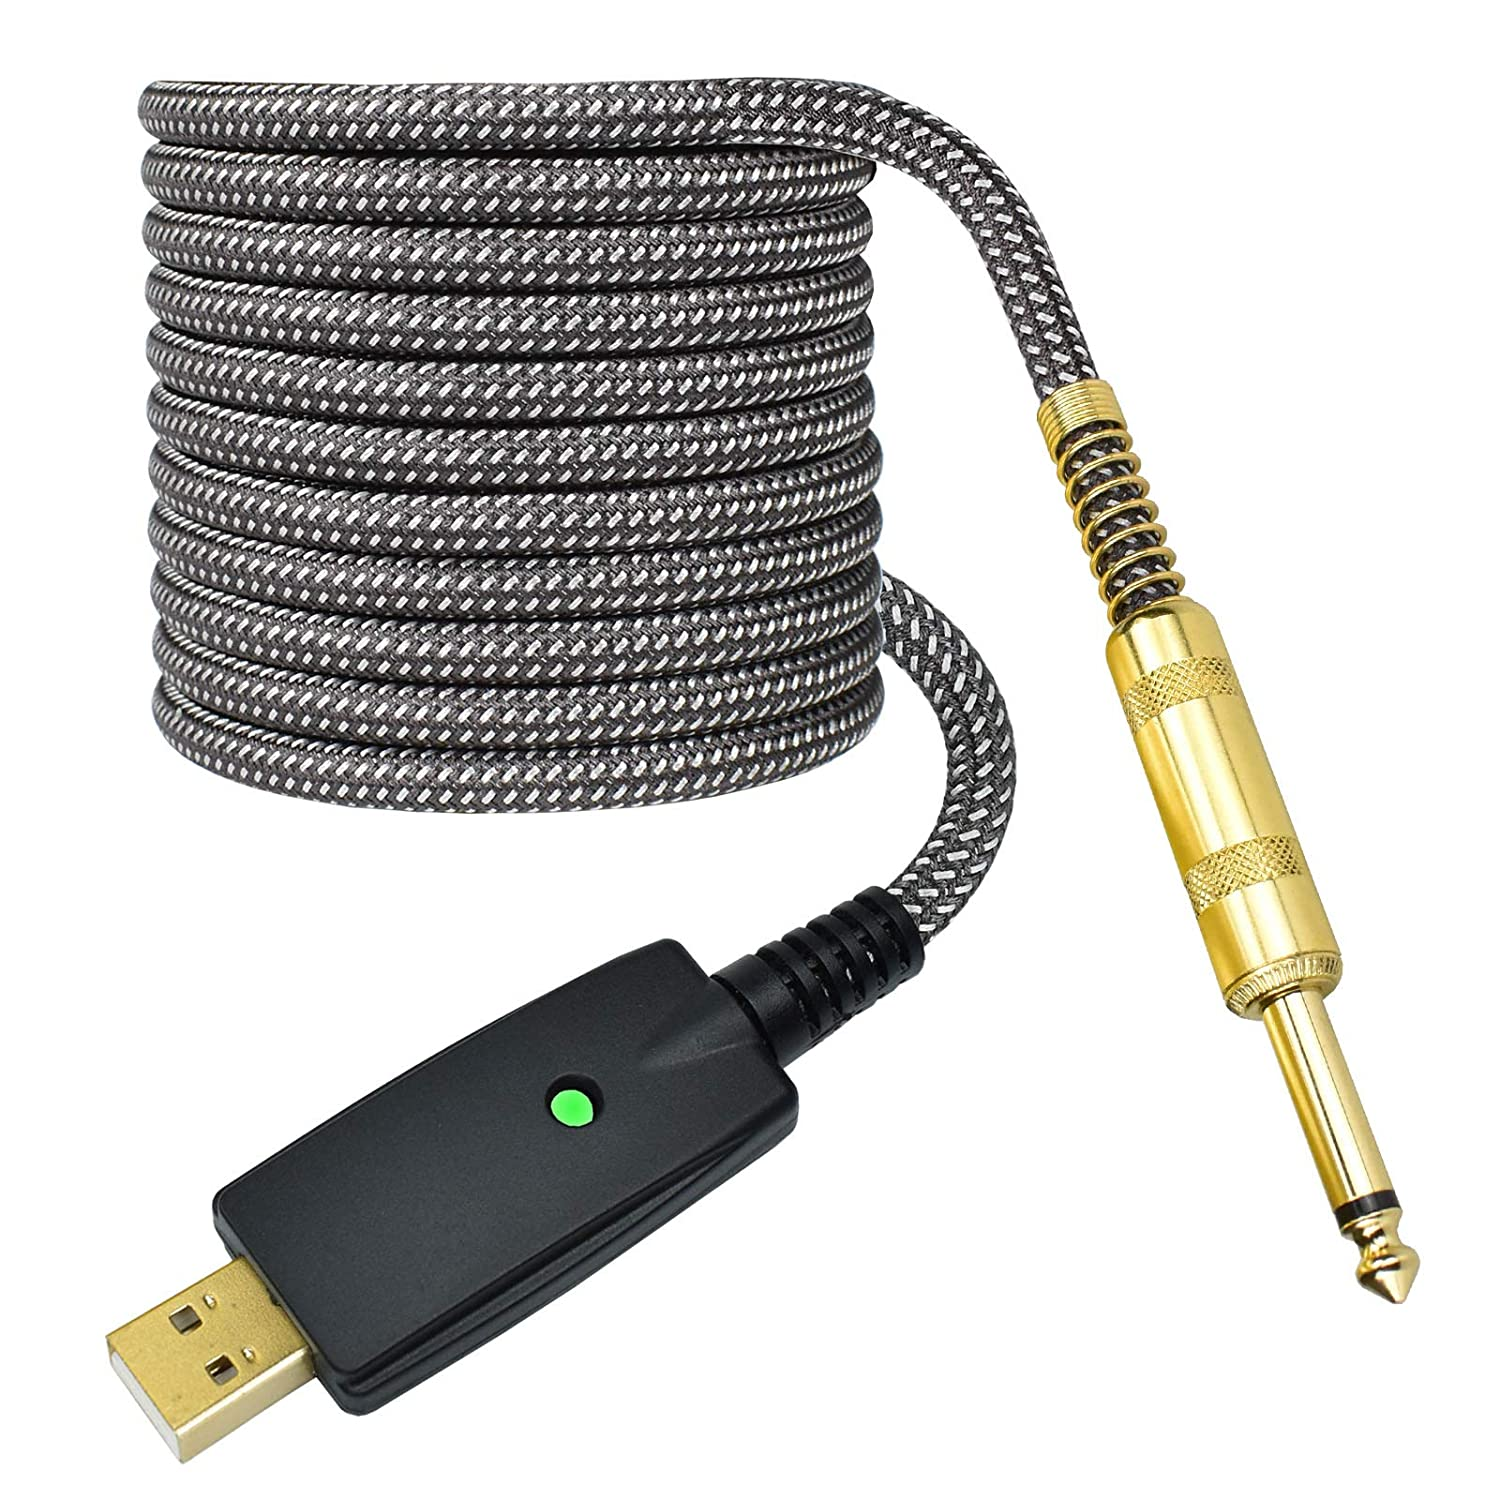 10FT Guitar to USB Cable Adapter, Mugteeve USB to 1/4